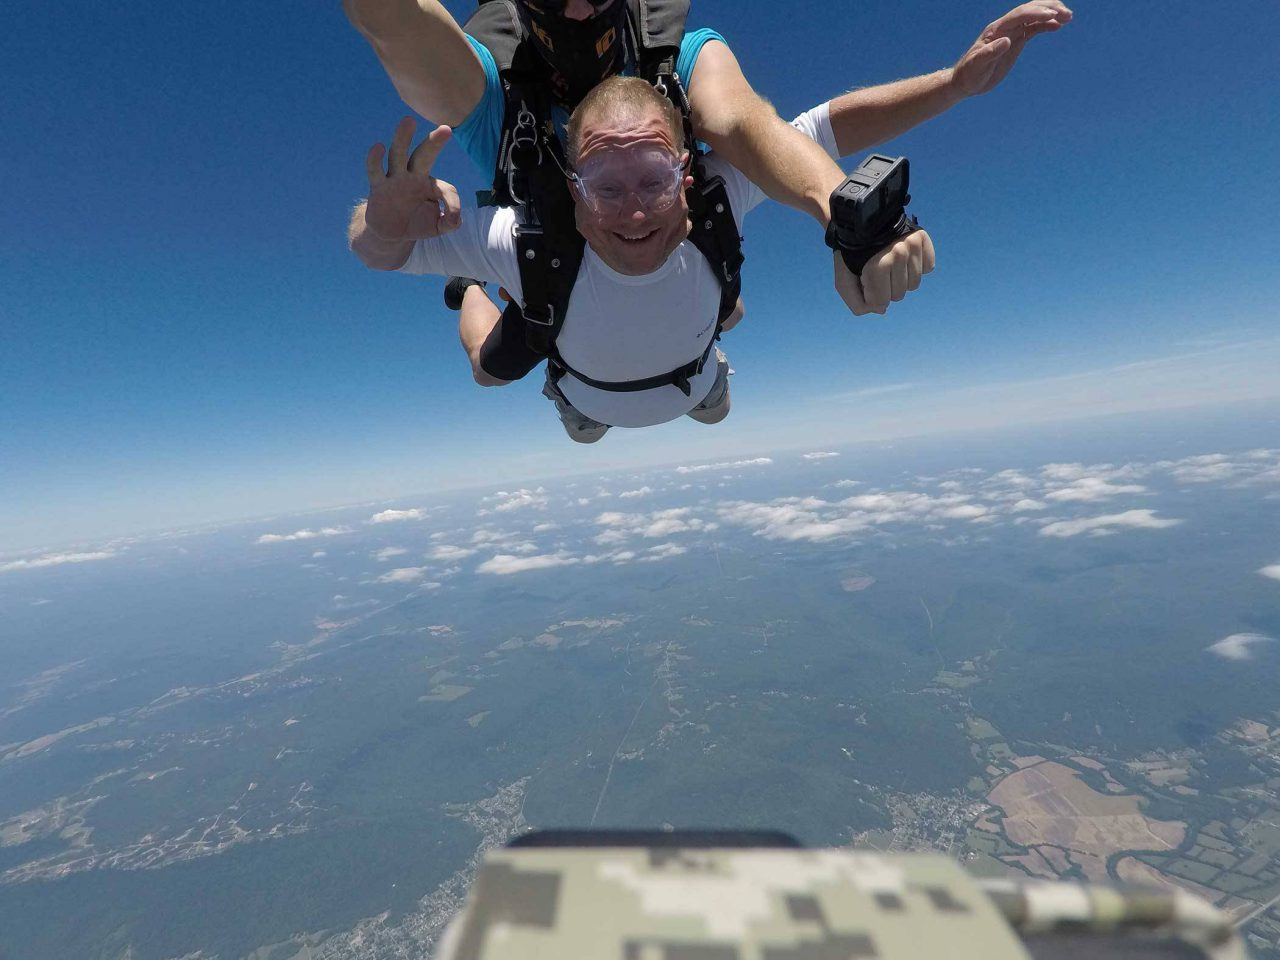 Man wearing white shirt holds his arm out in joy during free fall